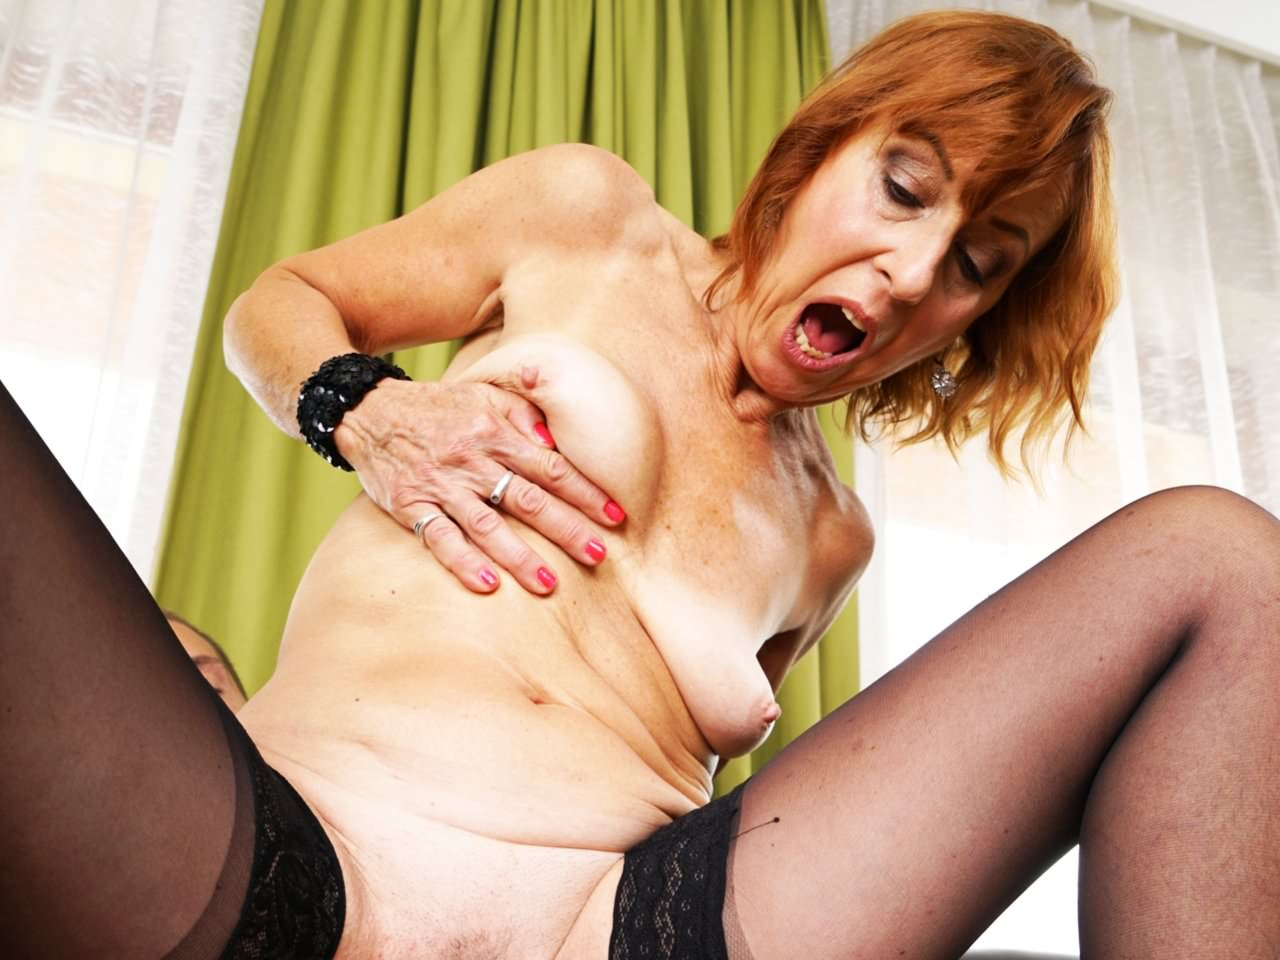 53 year old granny fucks her old pussy with a dildo - 4 3